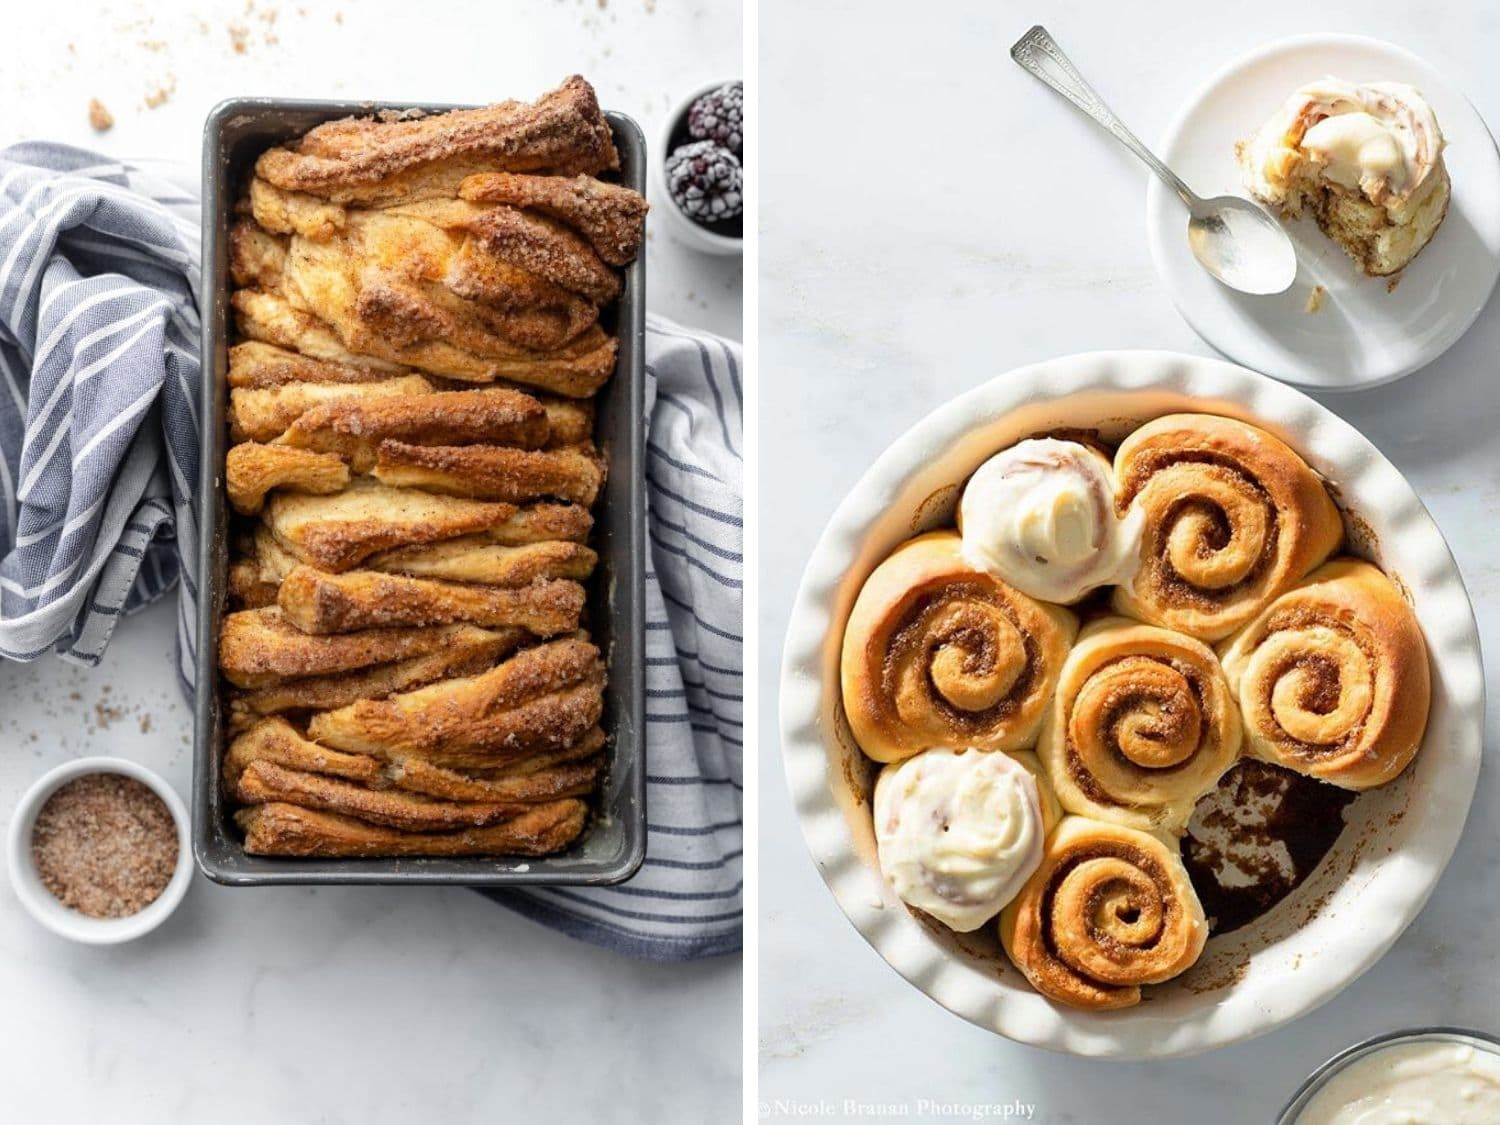 Collage of two baked treats for brunch.